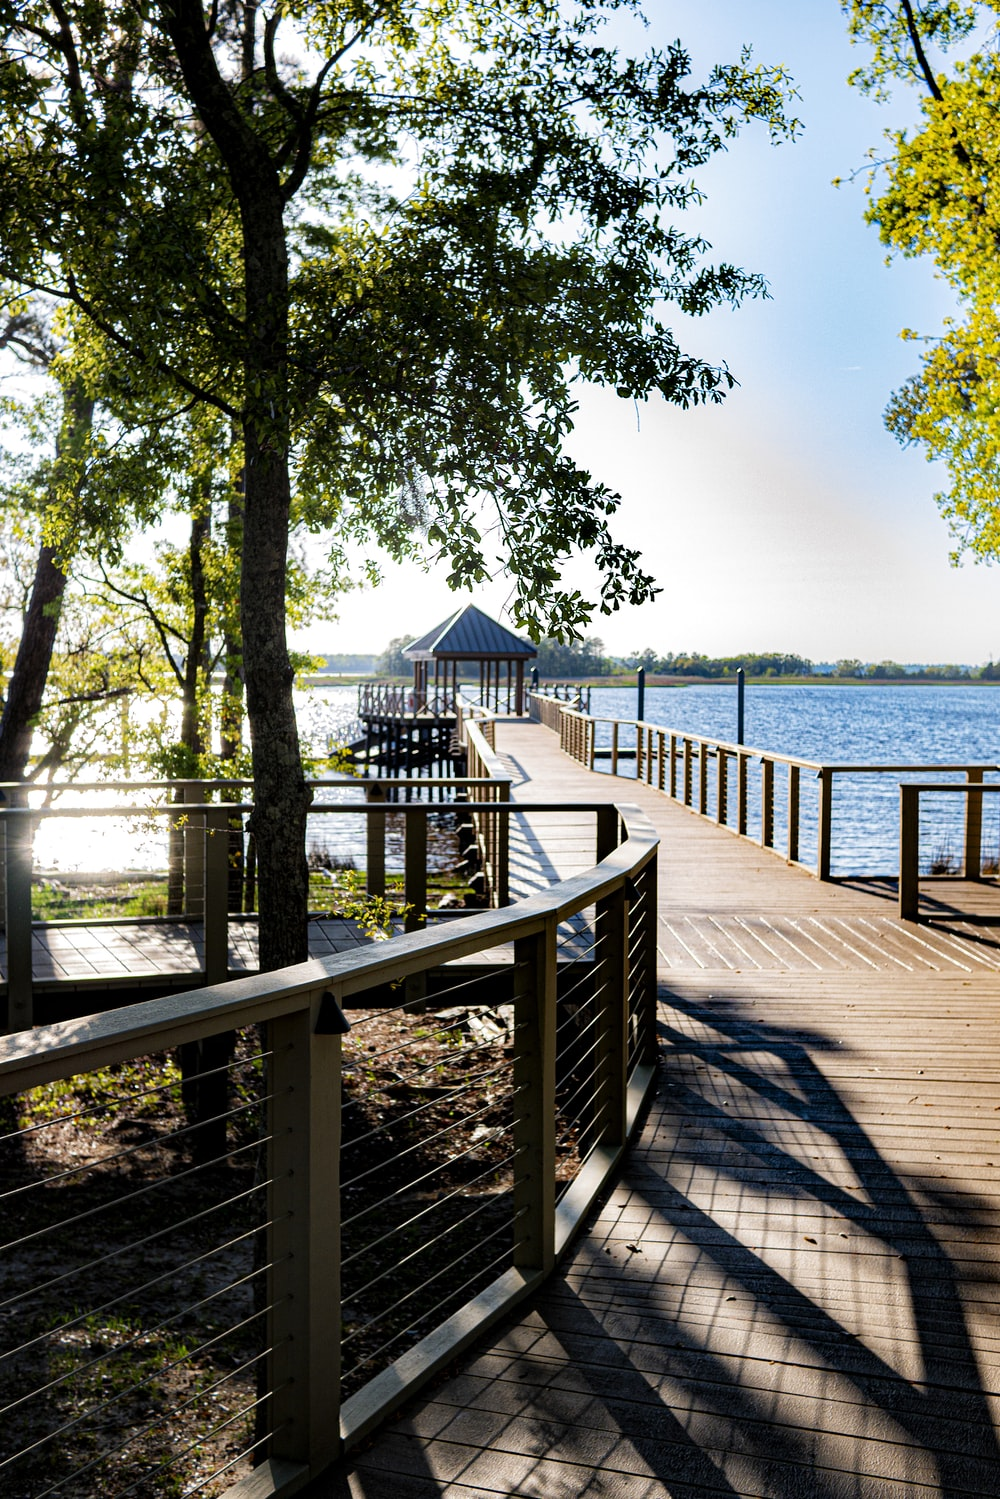 brown wooden dock near body of water during daytime